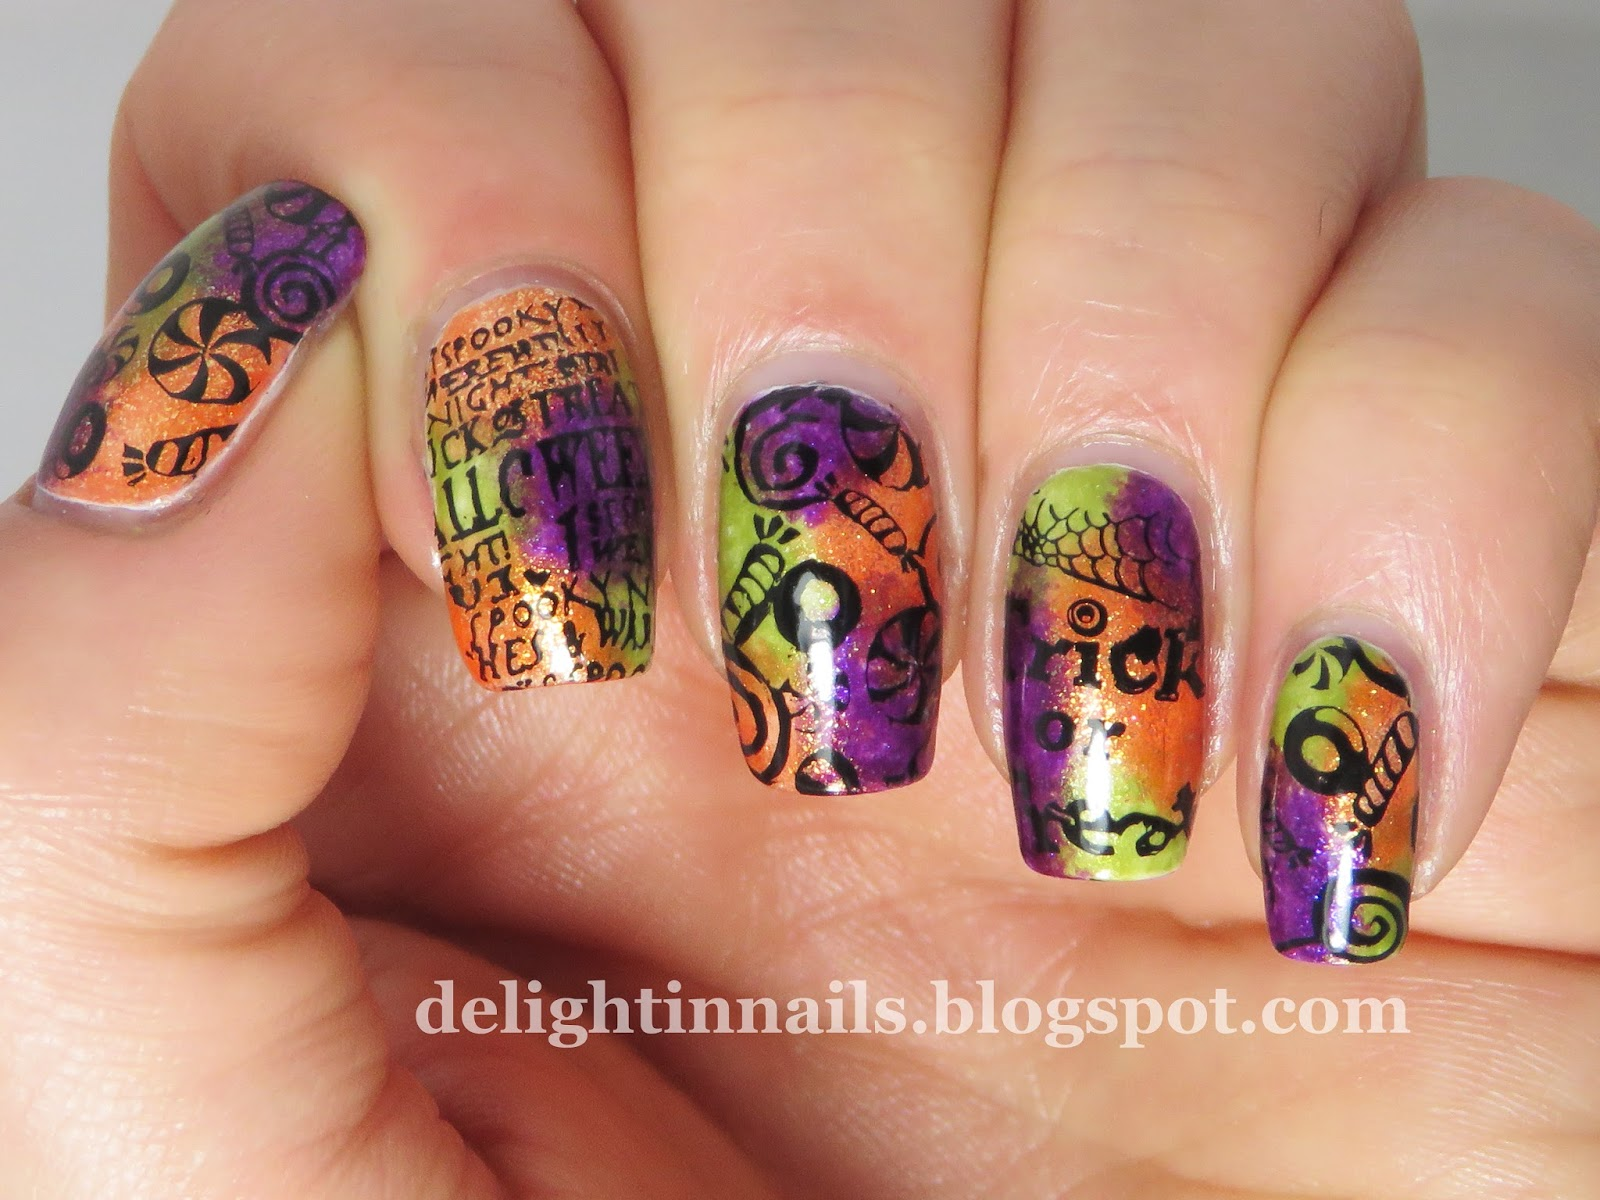 Delight In Nails: 40 Great Nail Art Ideas - Orange, Purple ...